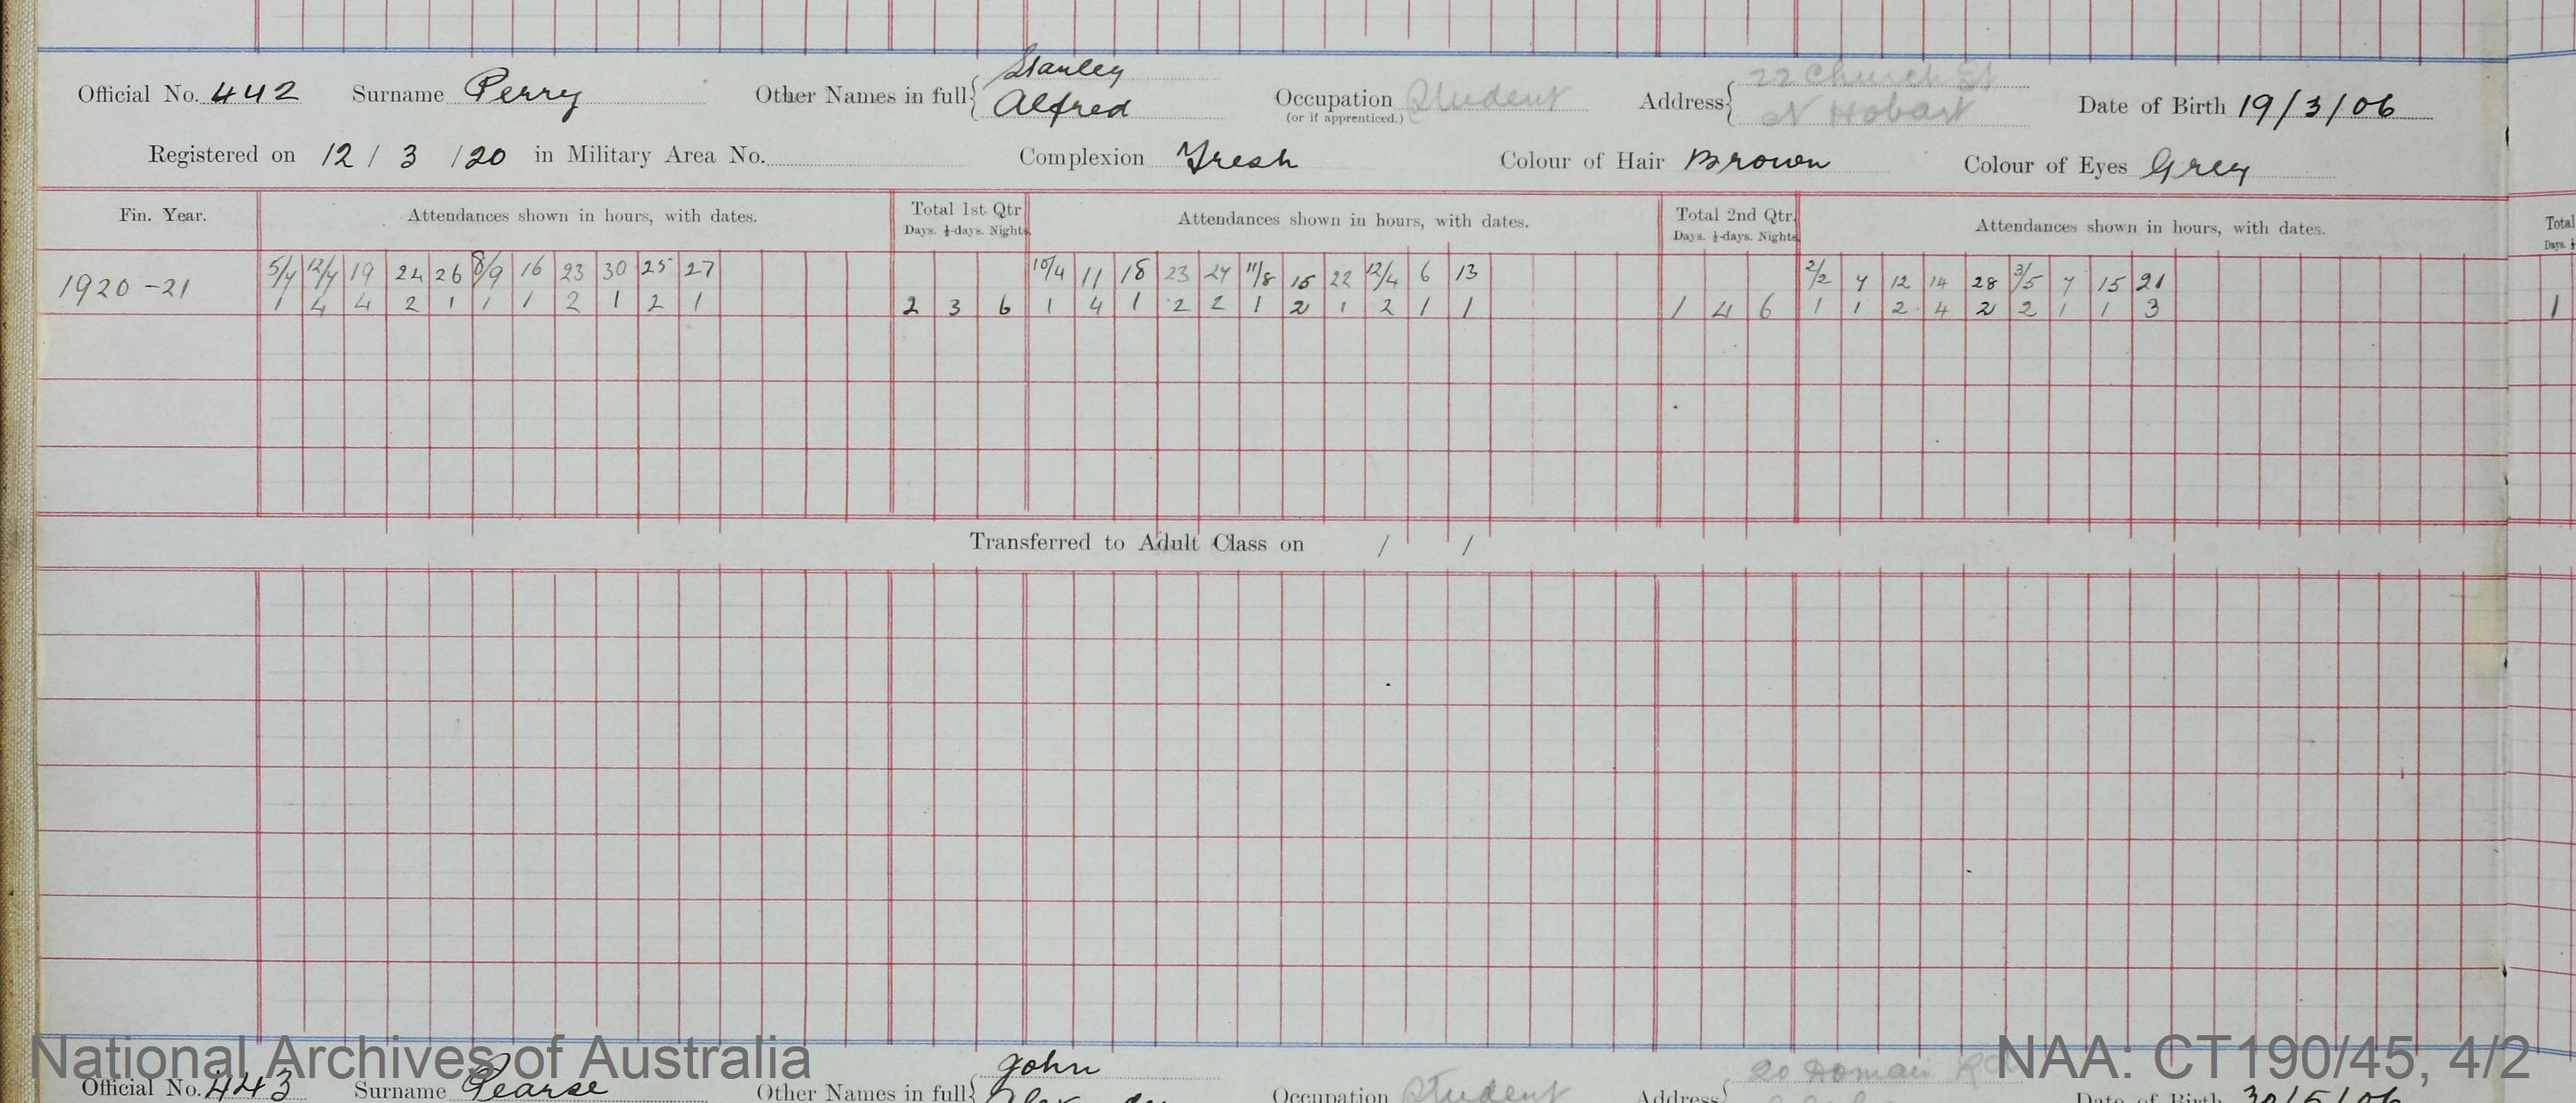 SURNAME - PERRY;  GIVEN NAME(S) - Stanley Alfred;  OFFICIAL NUMBER - 442;  DATE OF BIRTH - 19 March 1906;  PLACE OF BIRTH - [Unknown];  NEXT OF KIN - [Unknown];  SERVICE/STATION -Tasmania;  REGISTRATION DATE - 12 March 1920